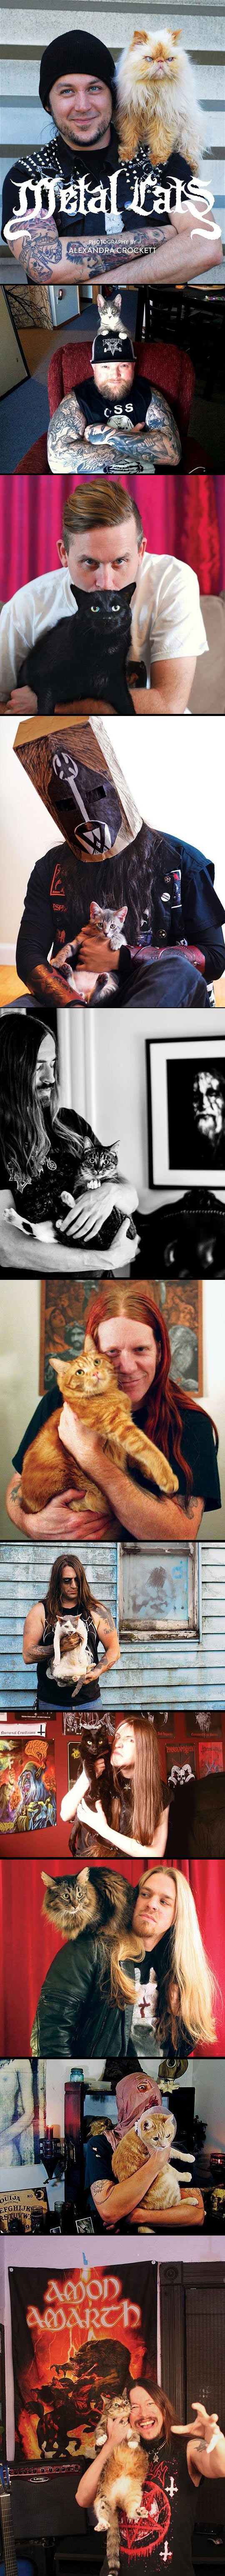 cool-Metal-cats-musician-black-rock